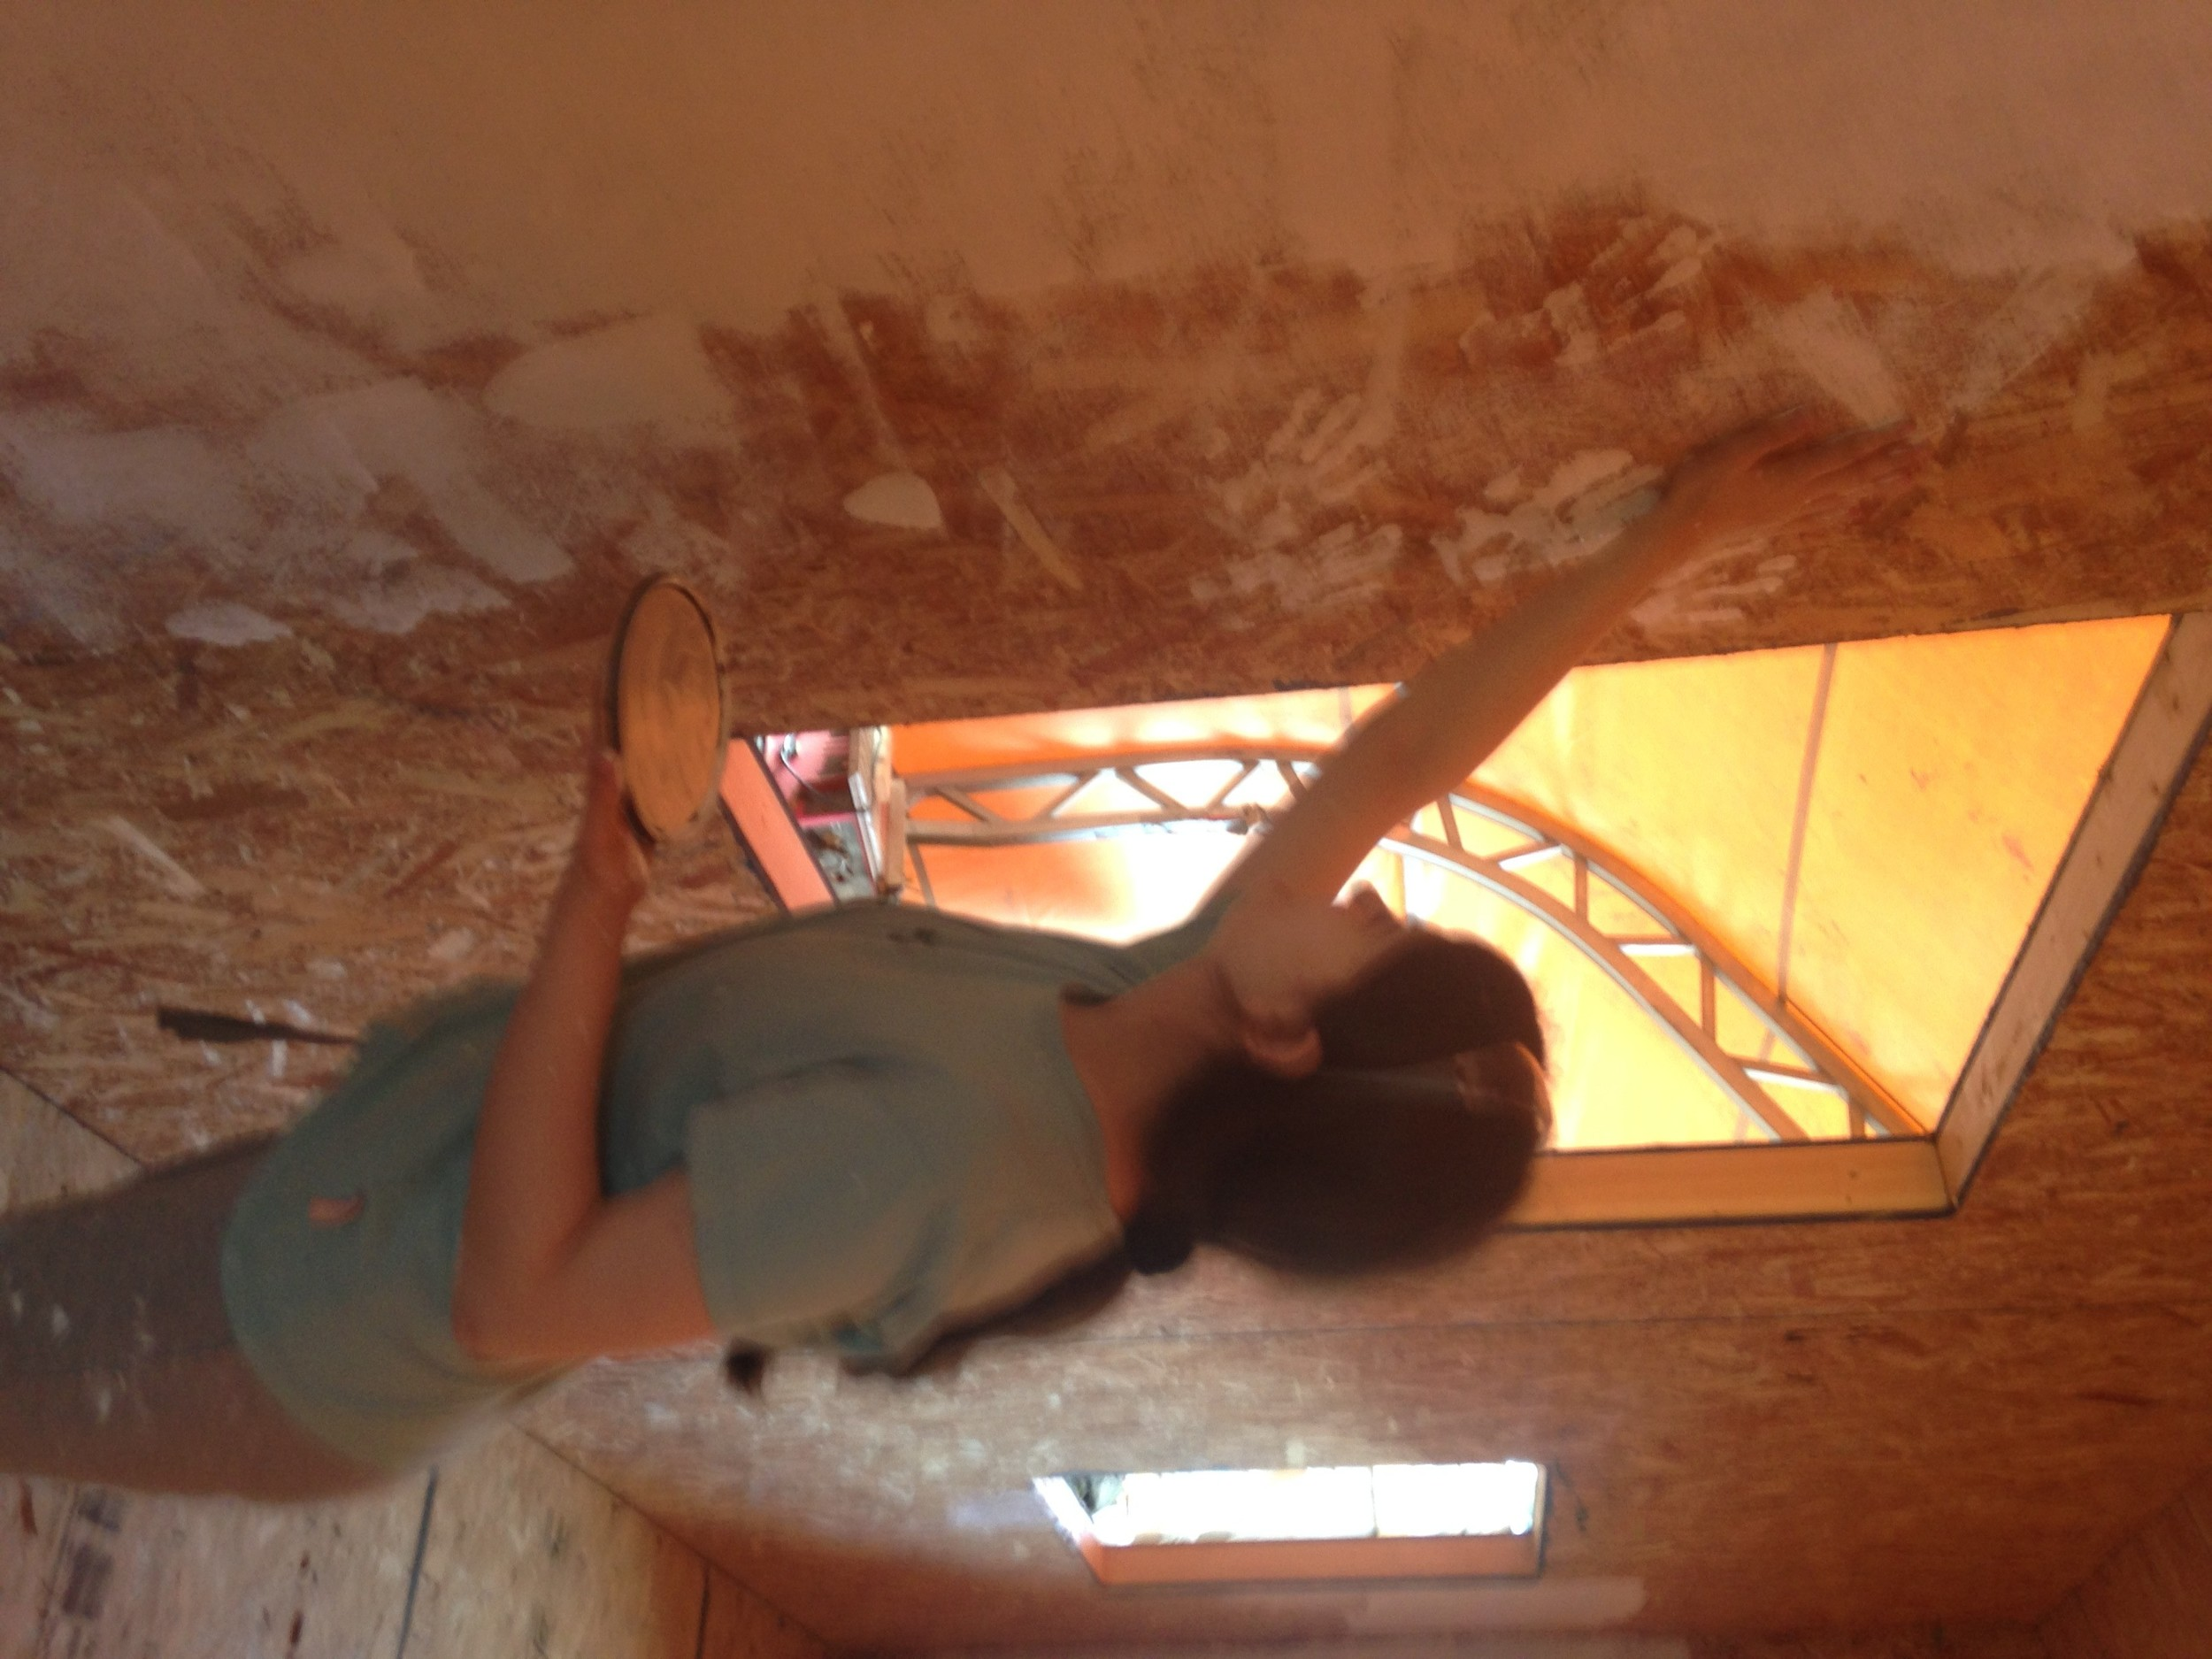 Priming-with-Bare-Hands-e1464357023743.jpg